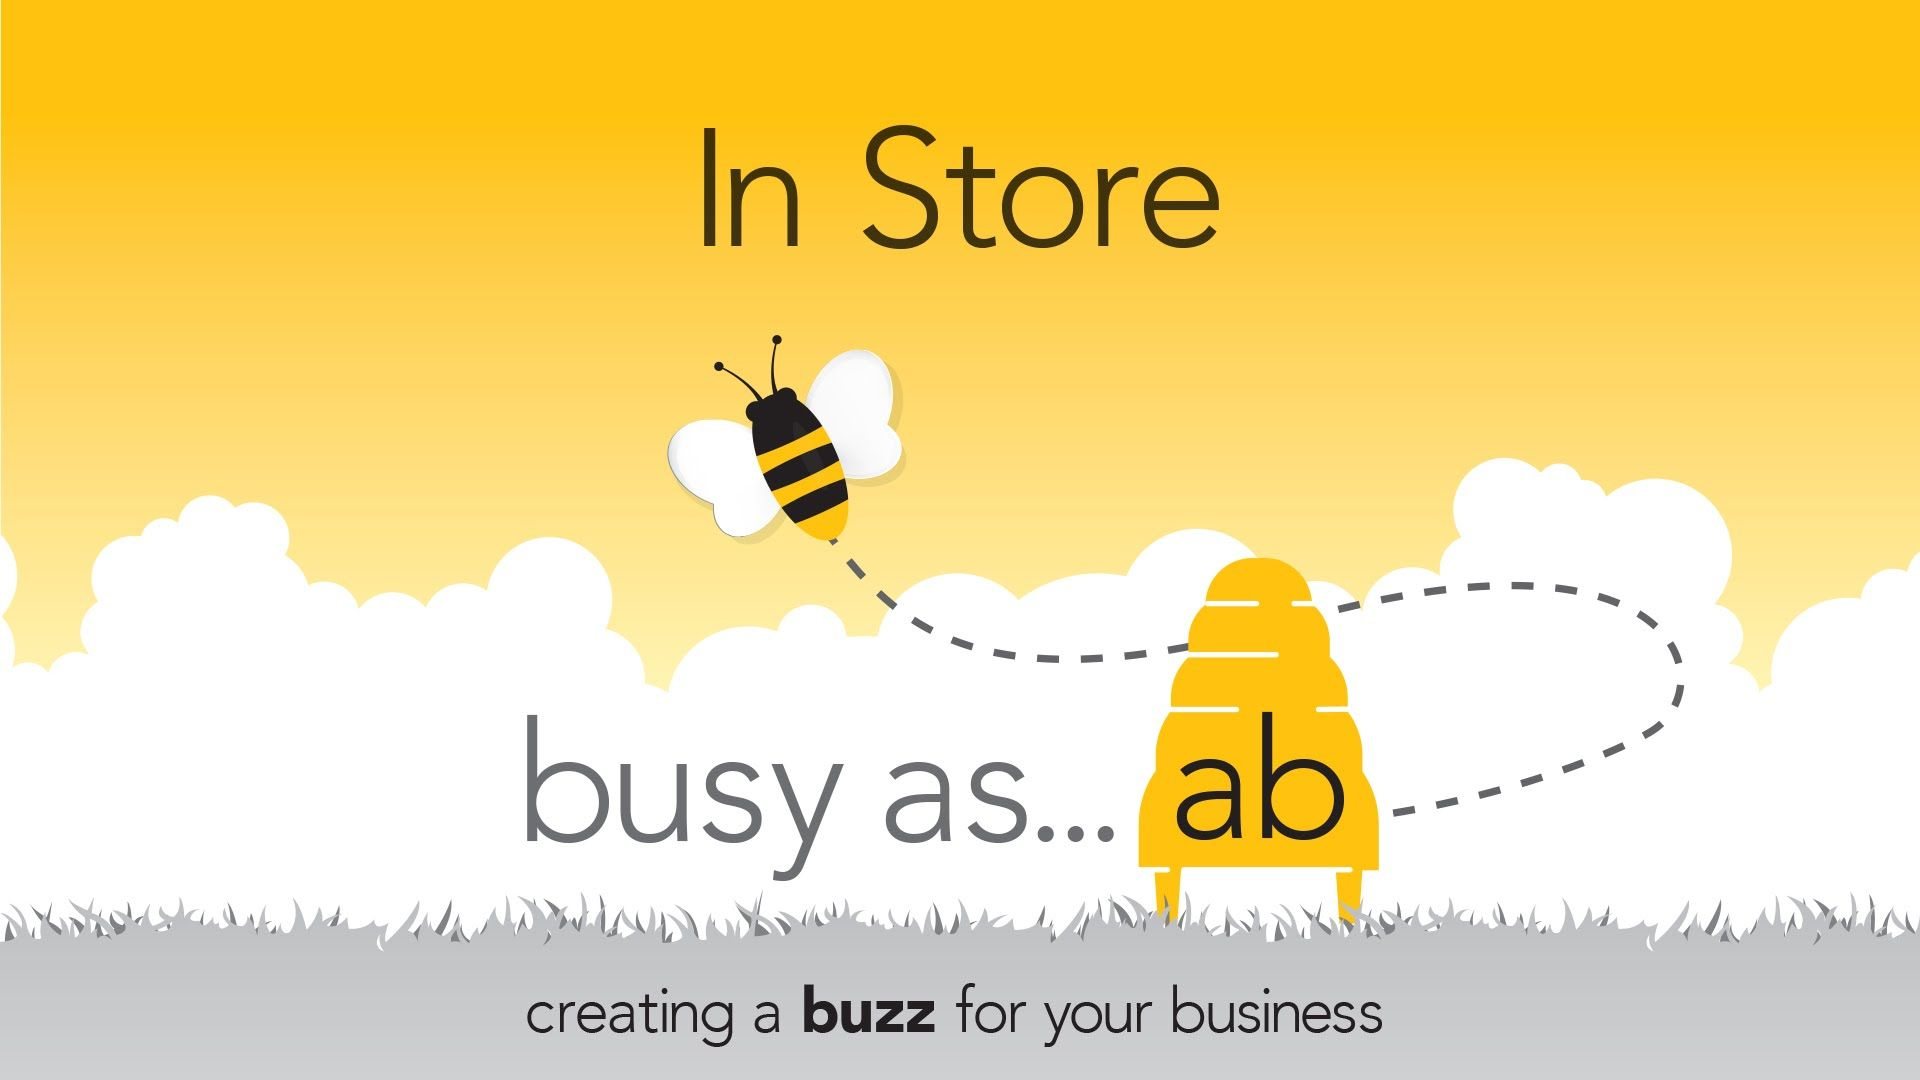 creating a buzz in-store - busy as A B